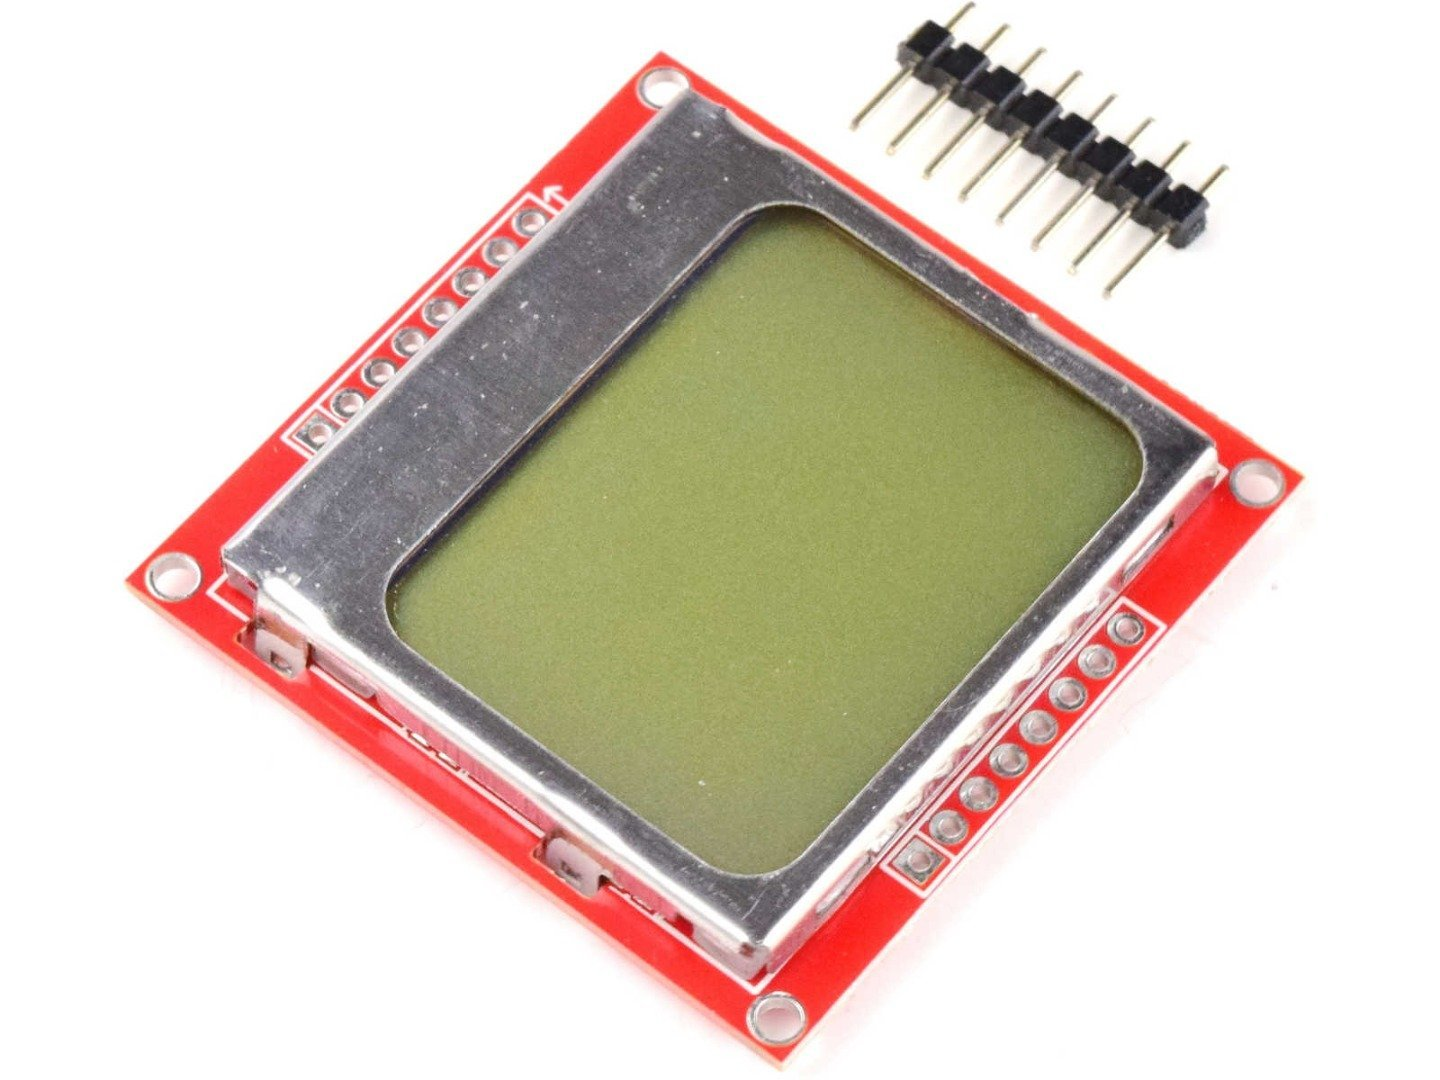 LCD Display 84×48 Pixel – SPI – Backlight – Nokia 5110 for Arduino etc.